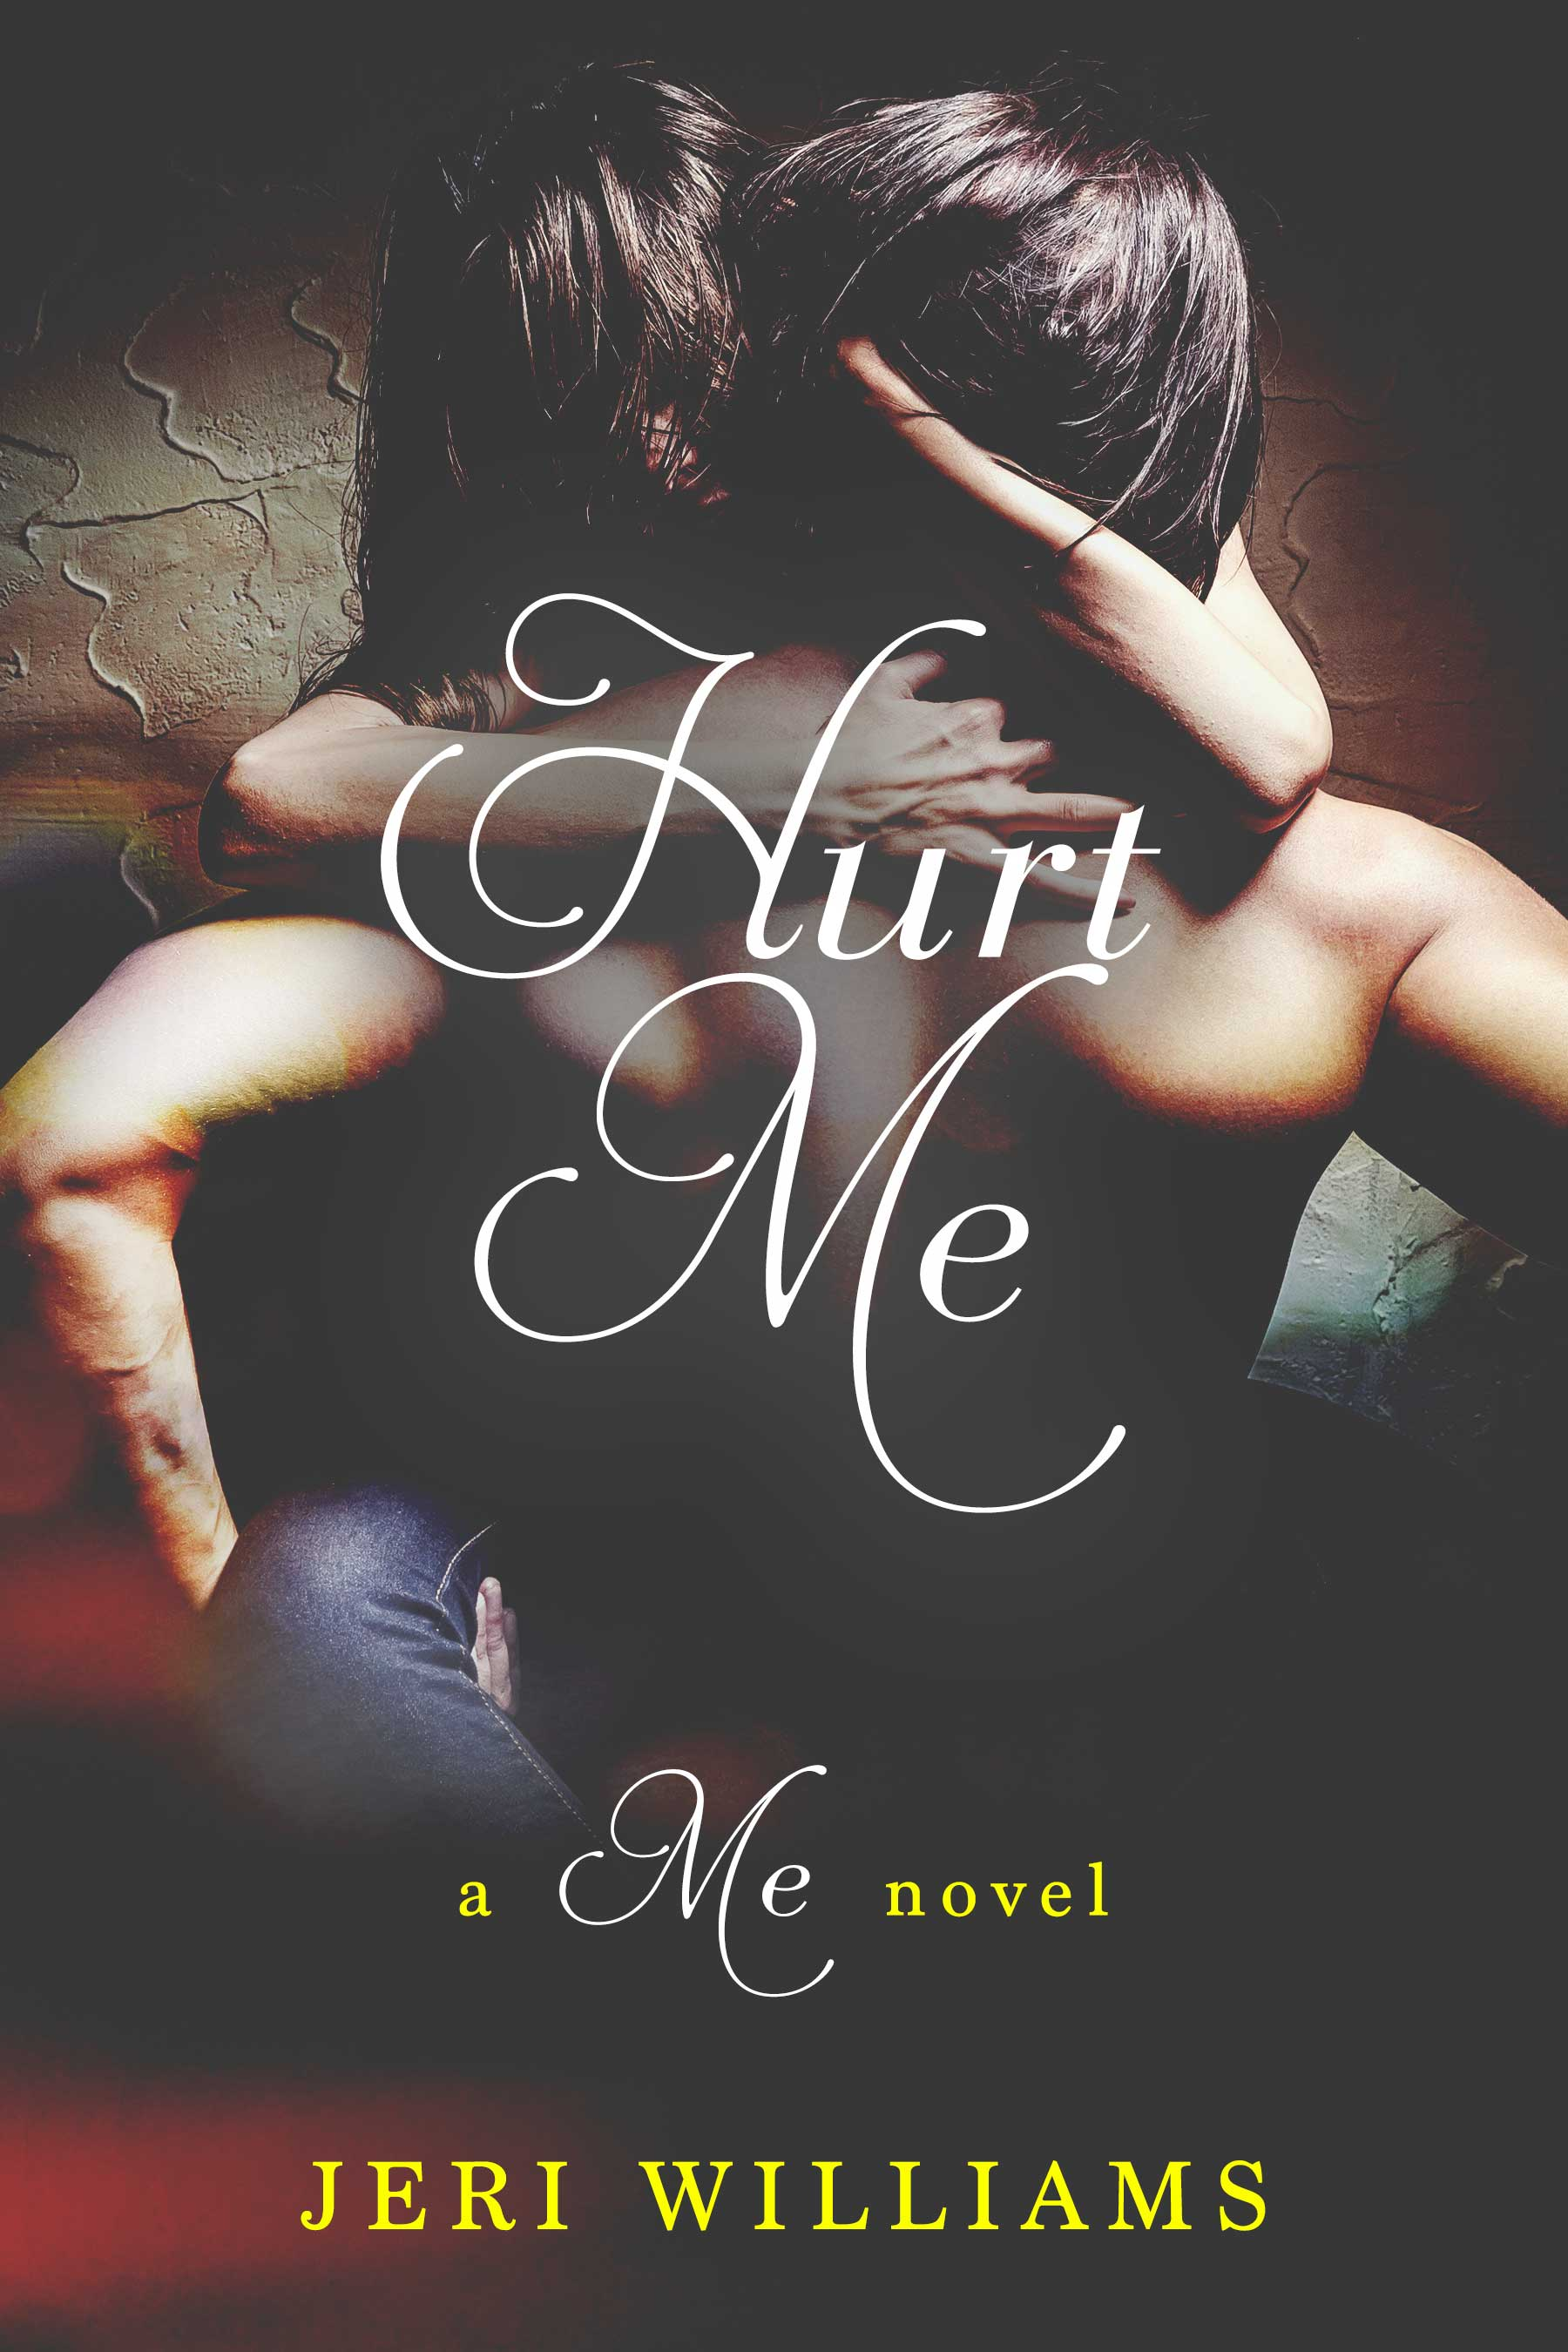 HurtMe.Ebook.Amazon